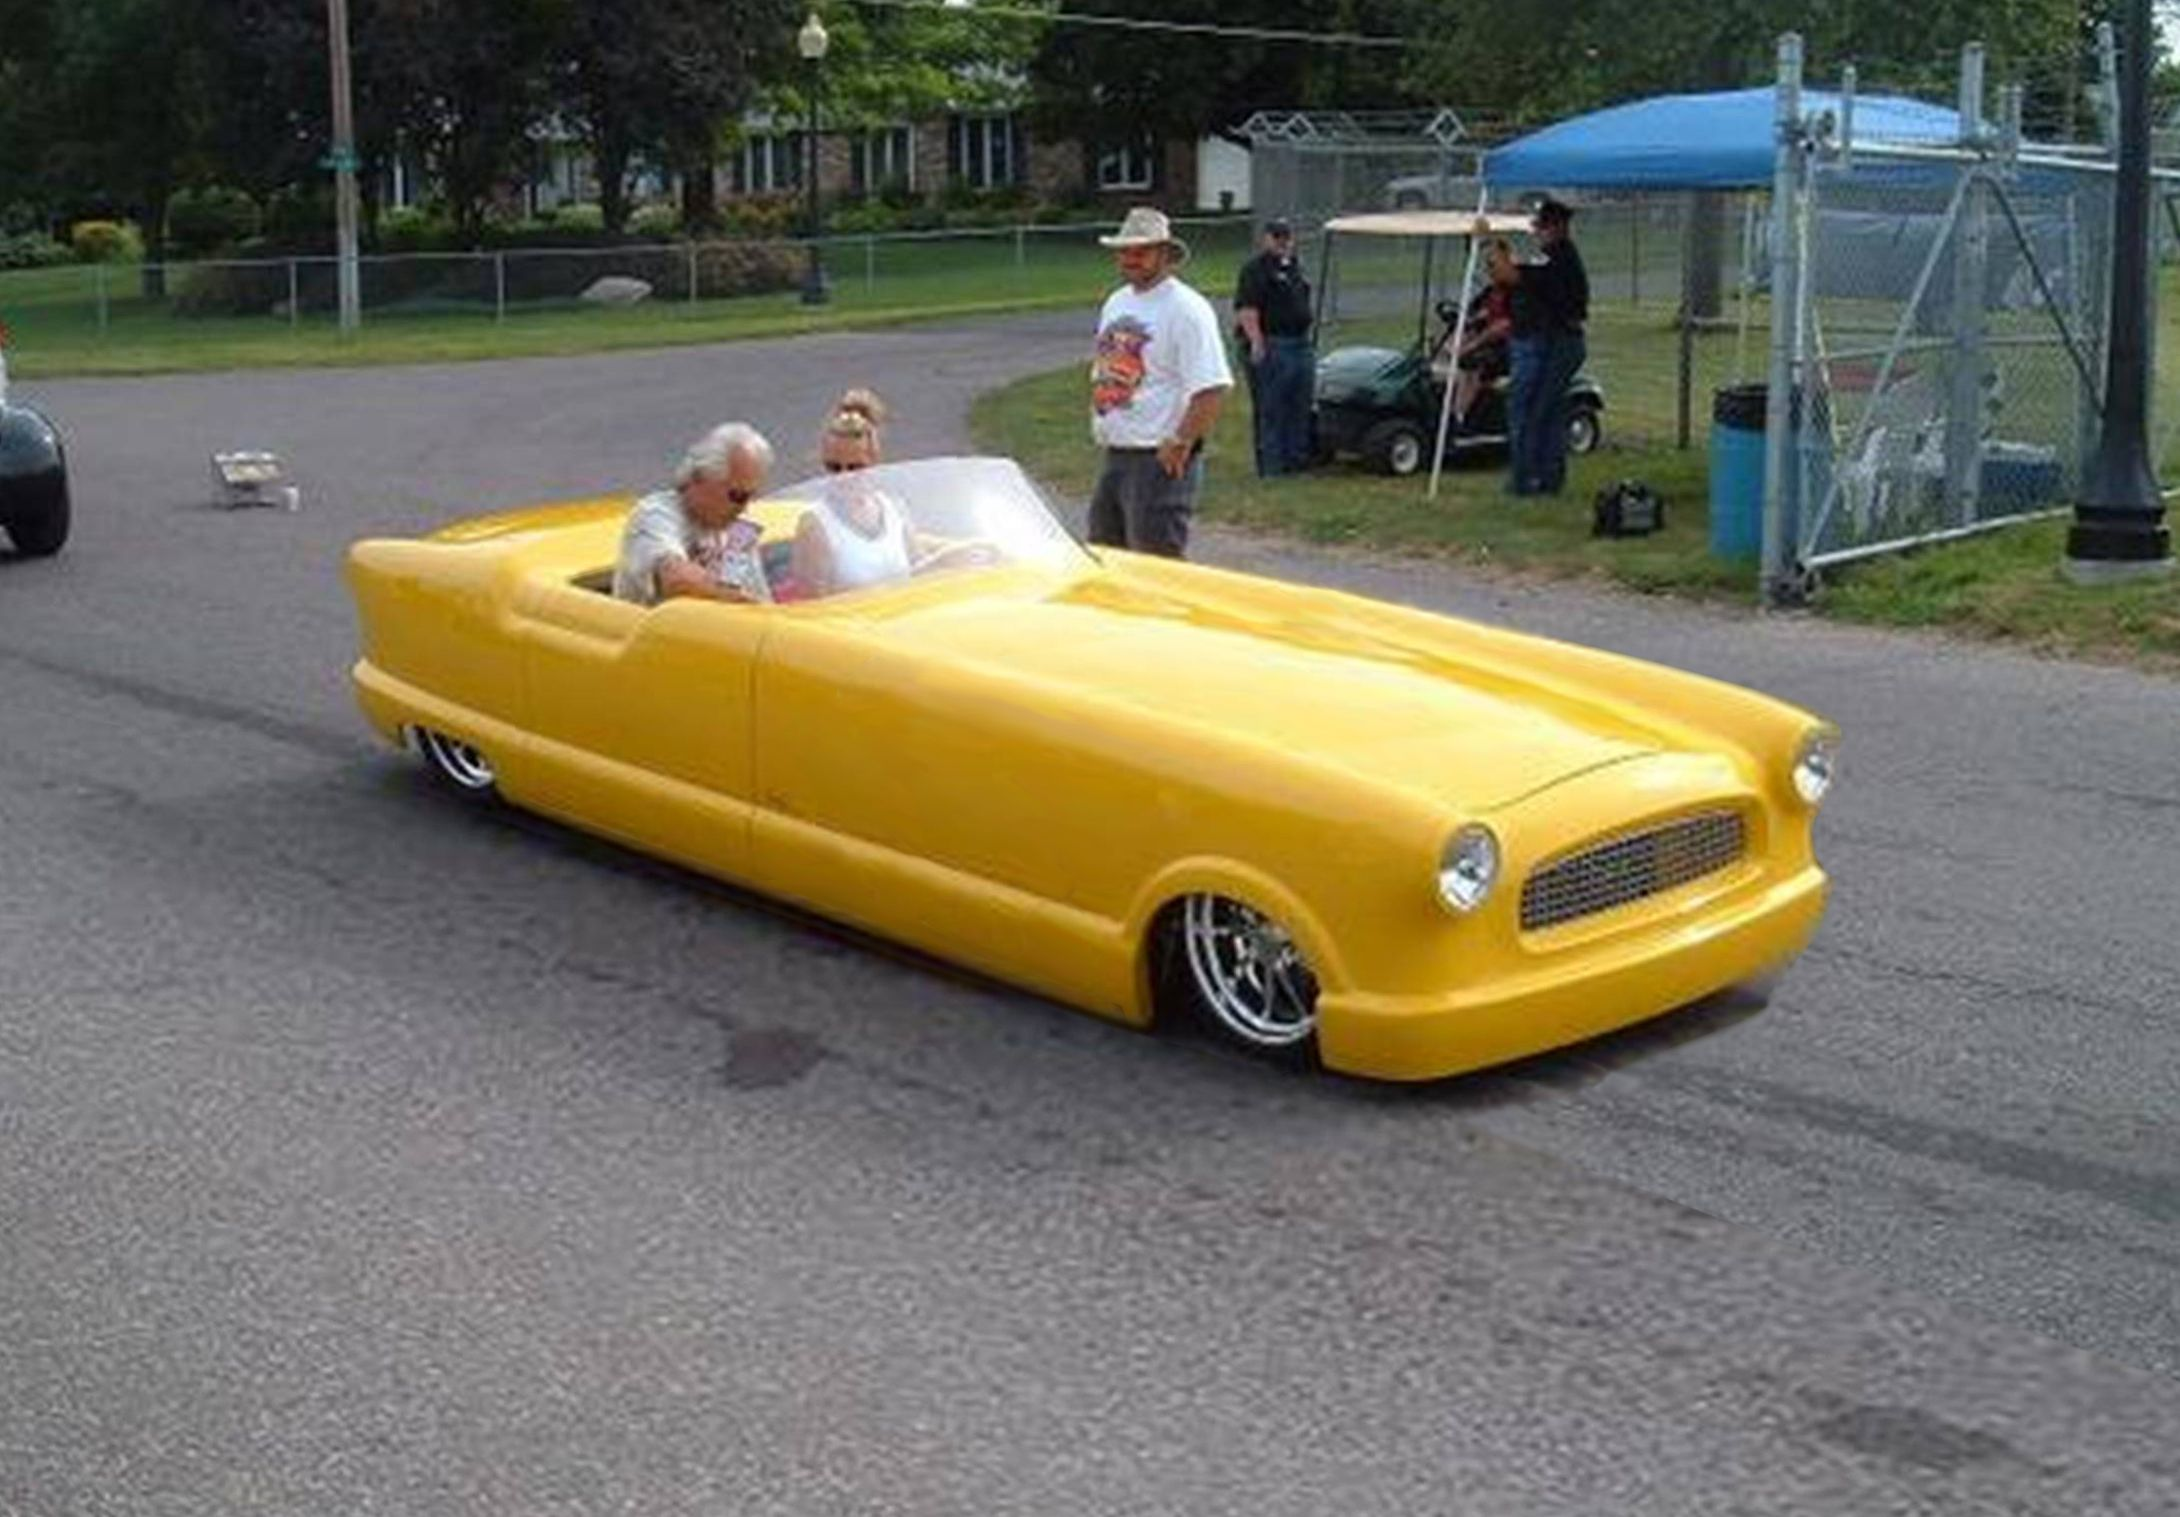 Little red wagon funny car pictures car canyon - Nash Metropolitan Jpg Cars Pinterest Cars Motor Vehicle And Dream Cars